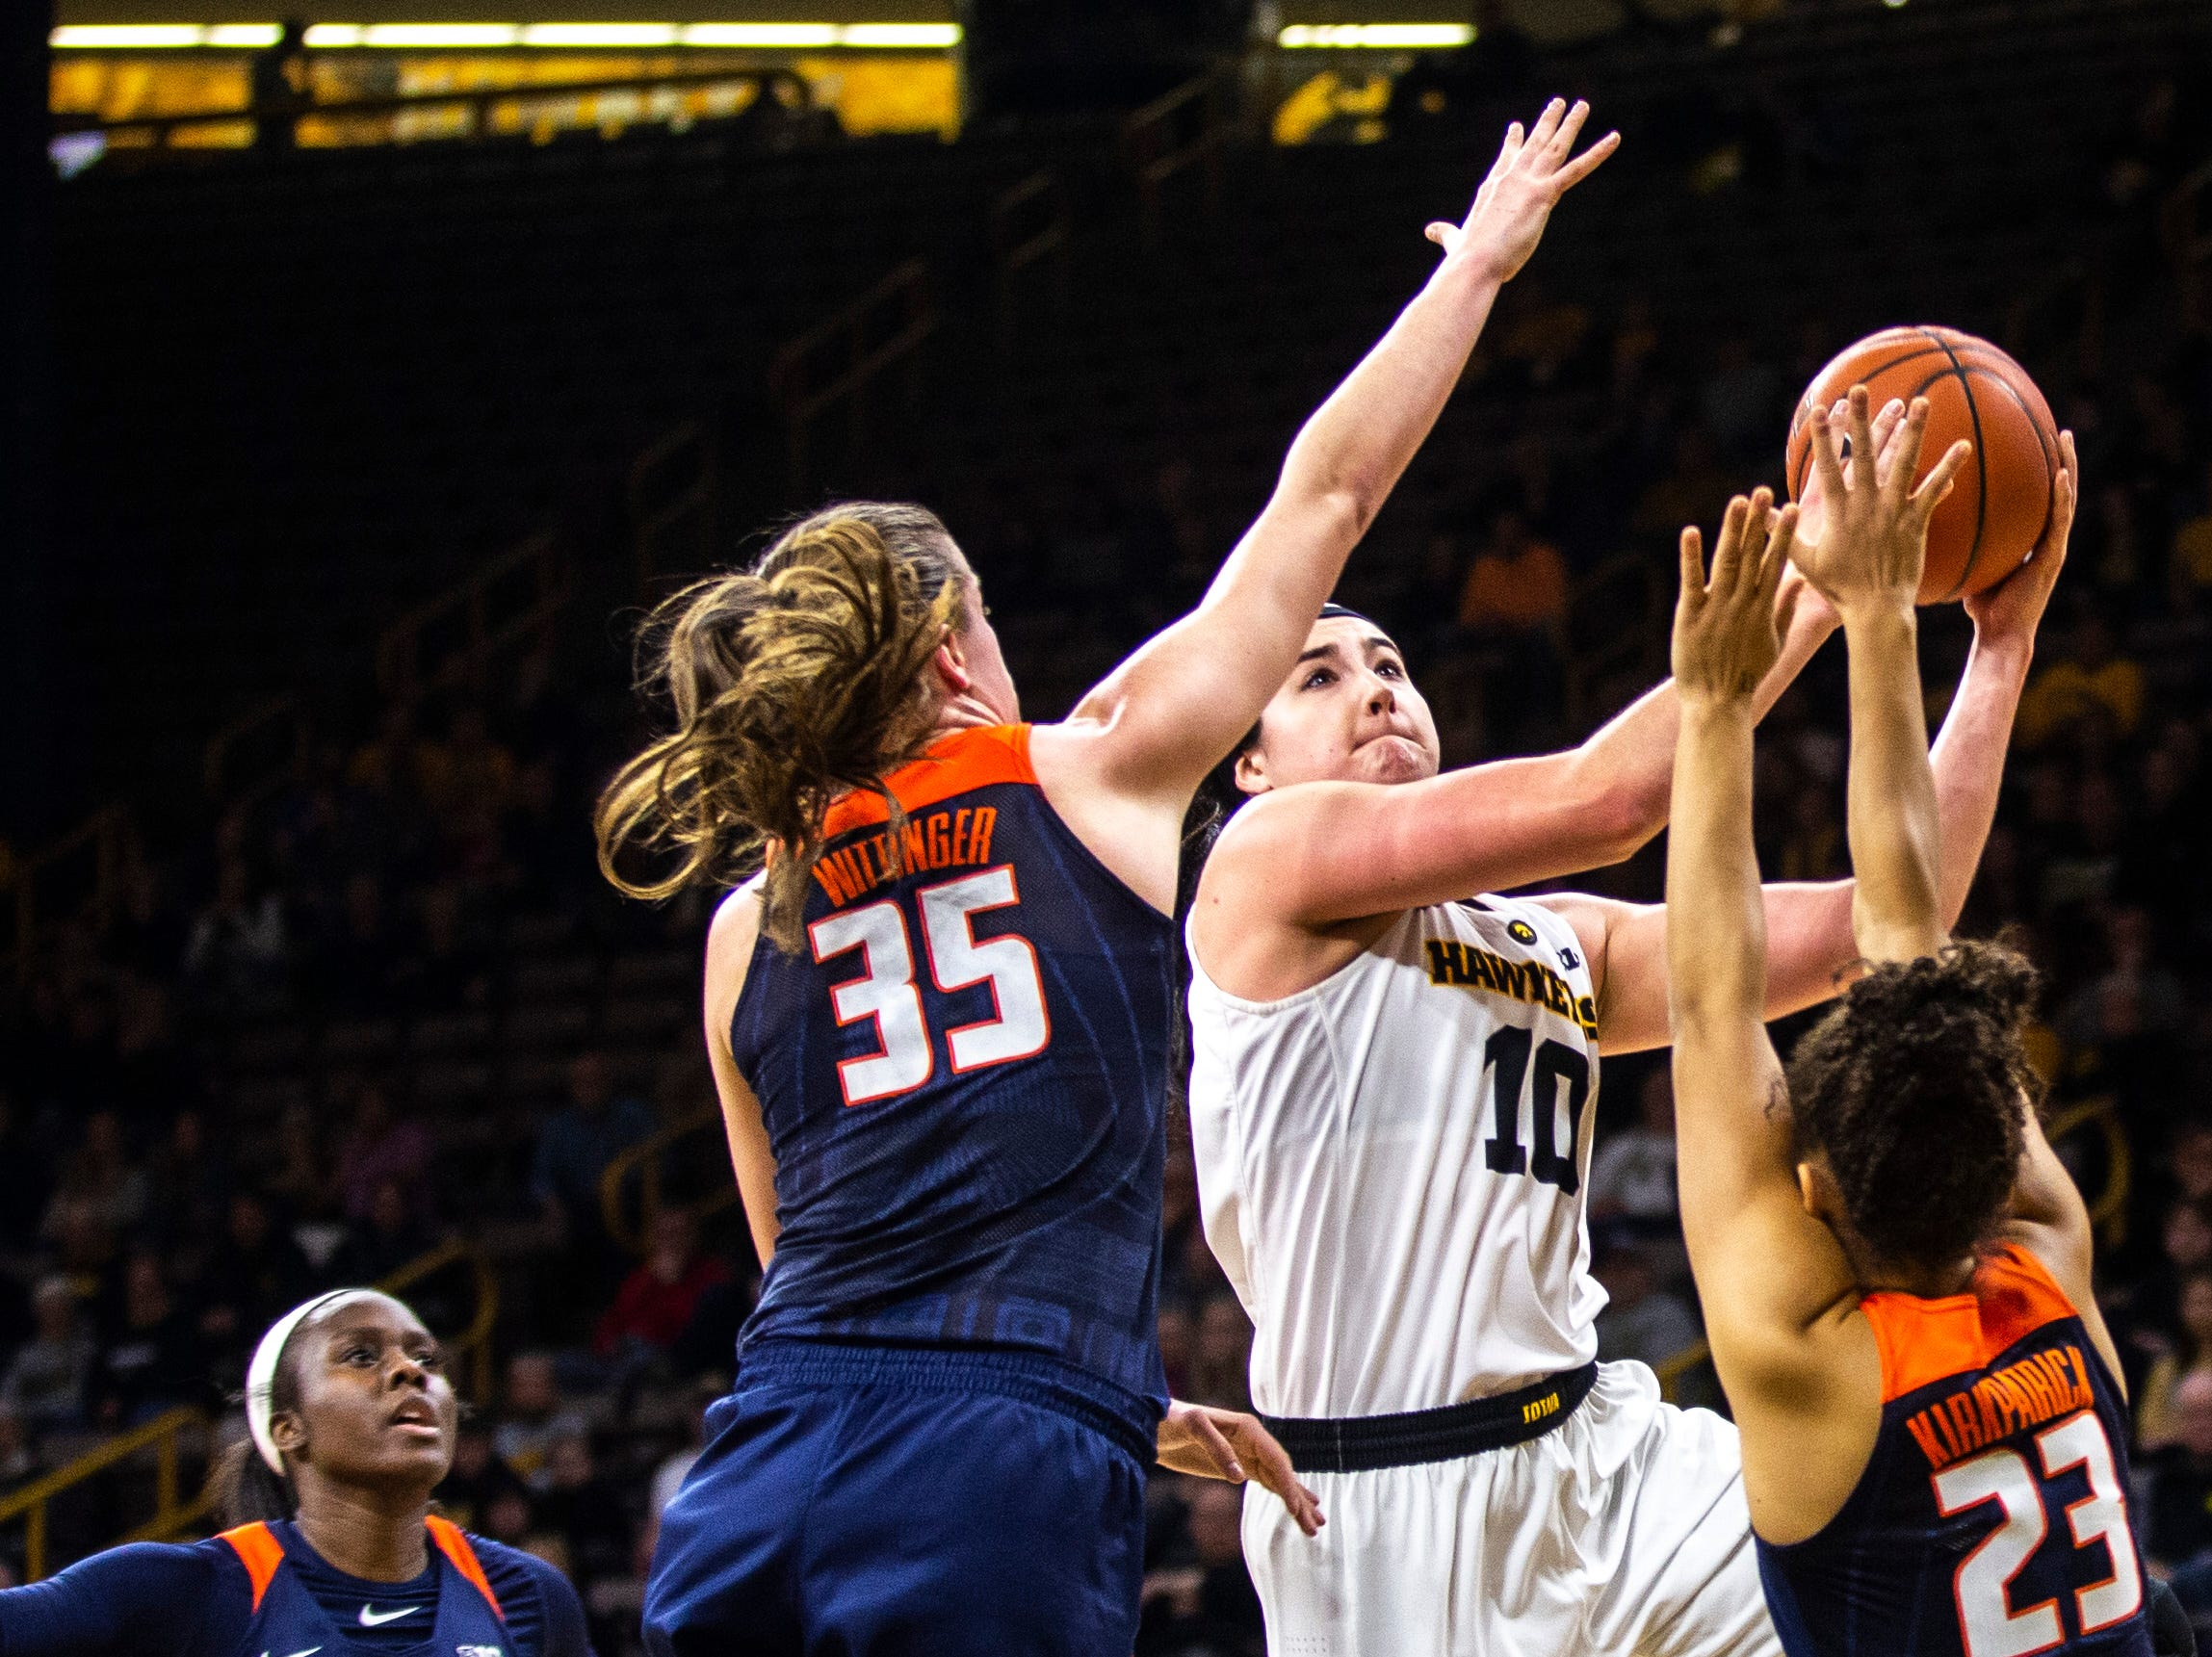 Iowa center Megan Gustafson (10) drives to the basket while Illinois' Cierra Rice, left, Alex Wittinger (35) and Jaelyne Kirkpatrick (23) defend during a NCAA Big Ten Conference women's basketball game on Thursday, Feb. 14, 2019 at Carver-Hawkeye Arena in Iowa City, Iowa.